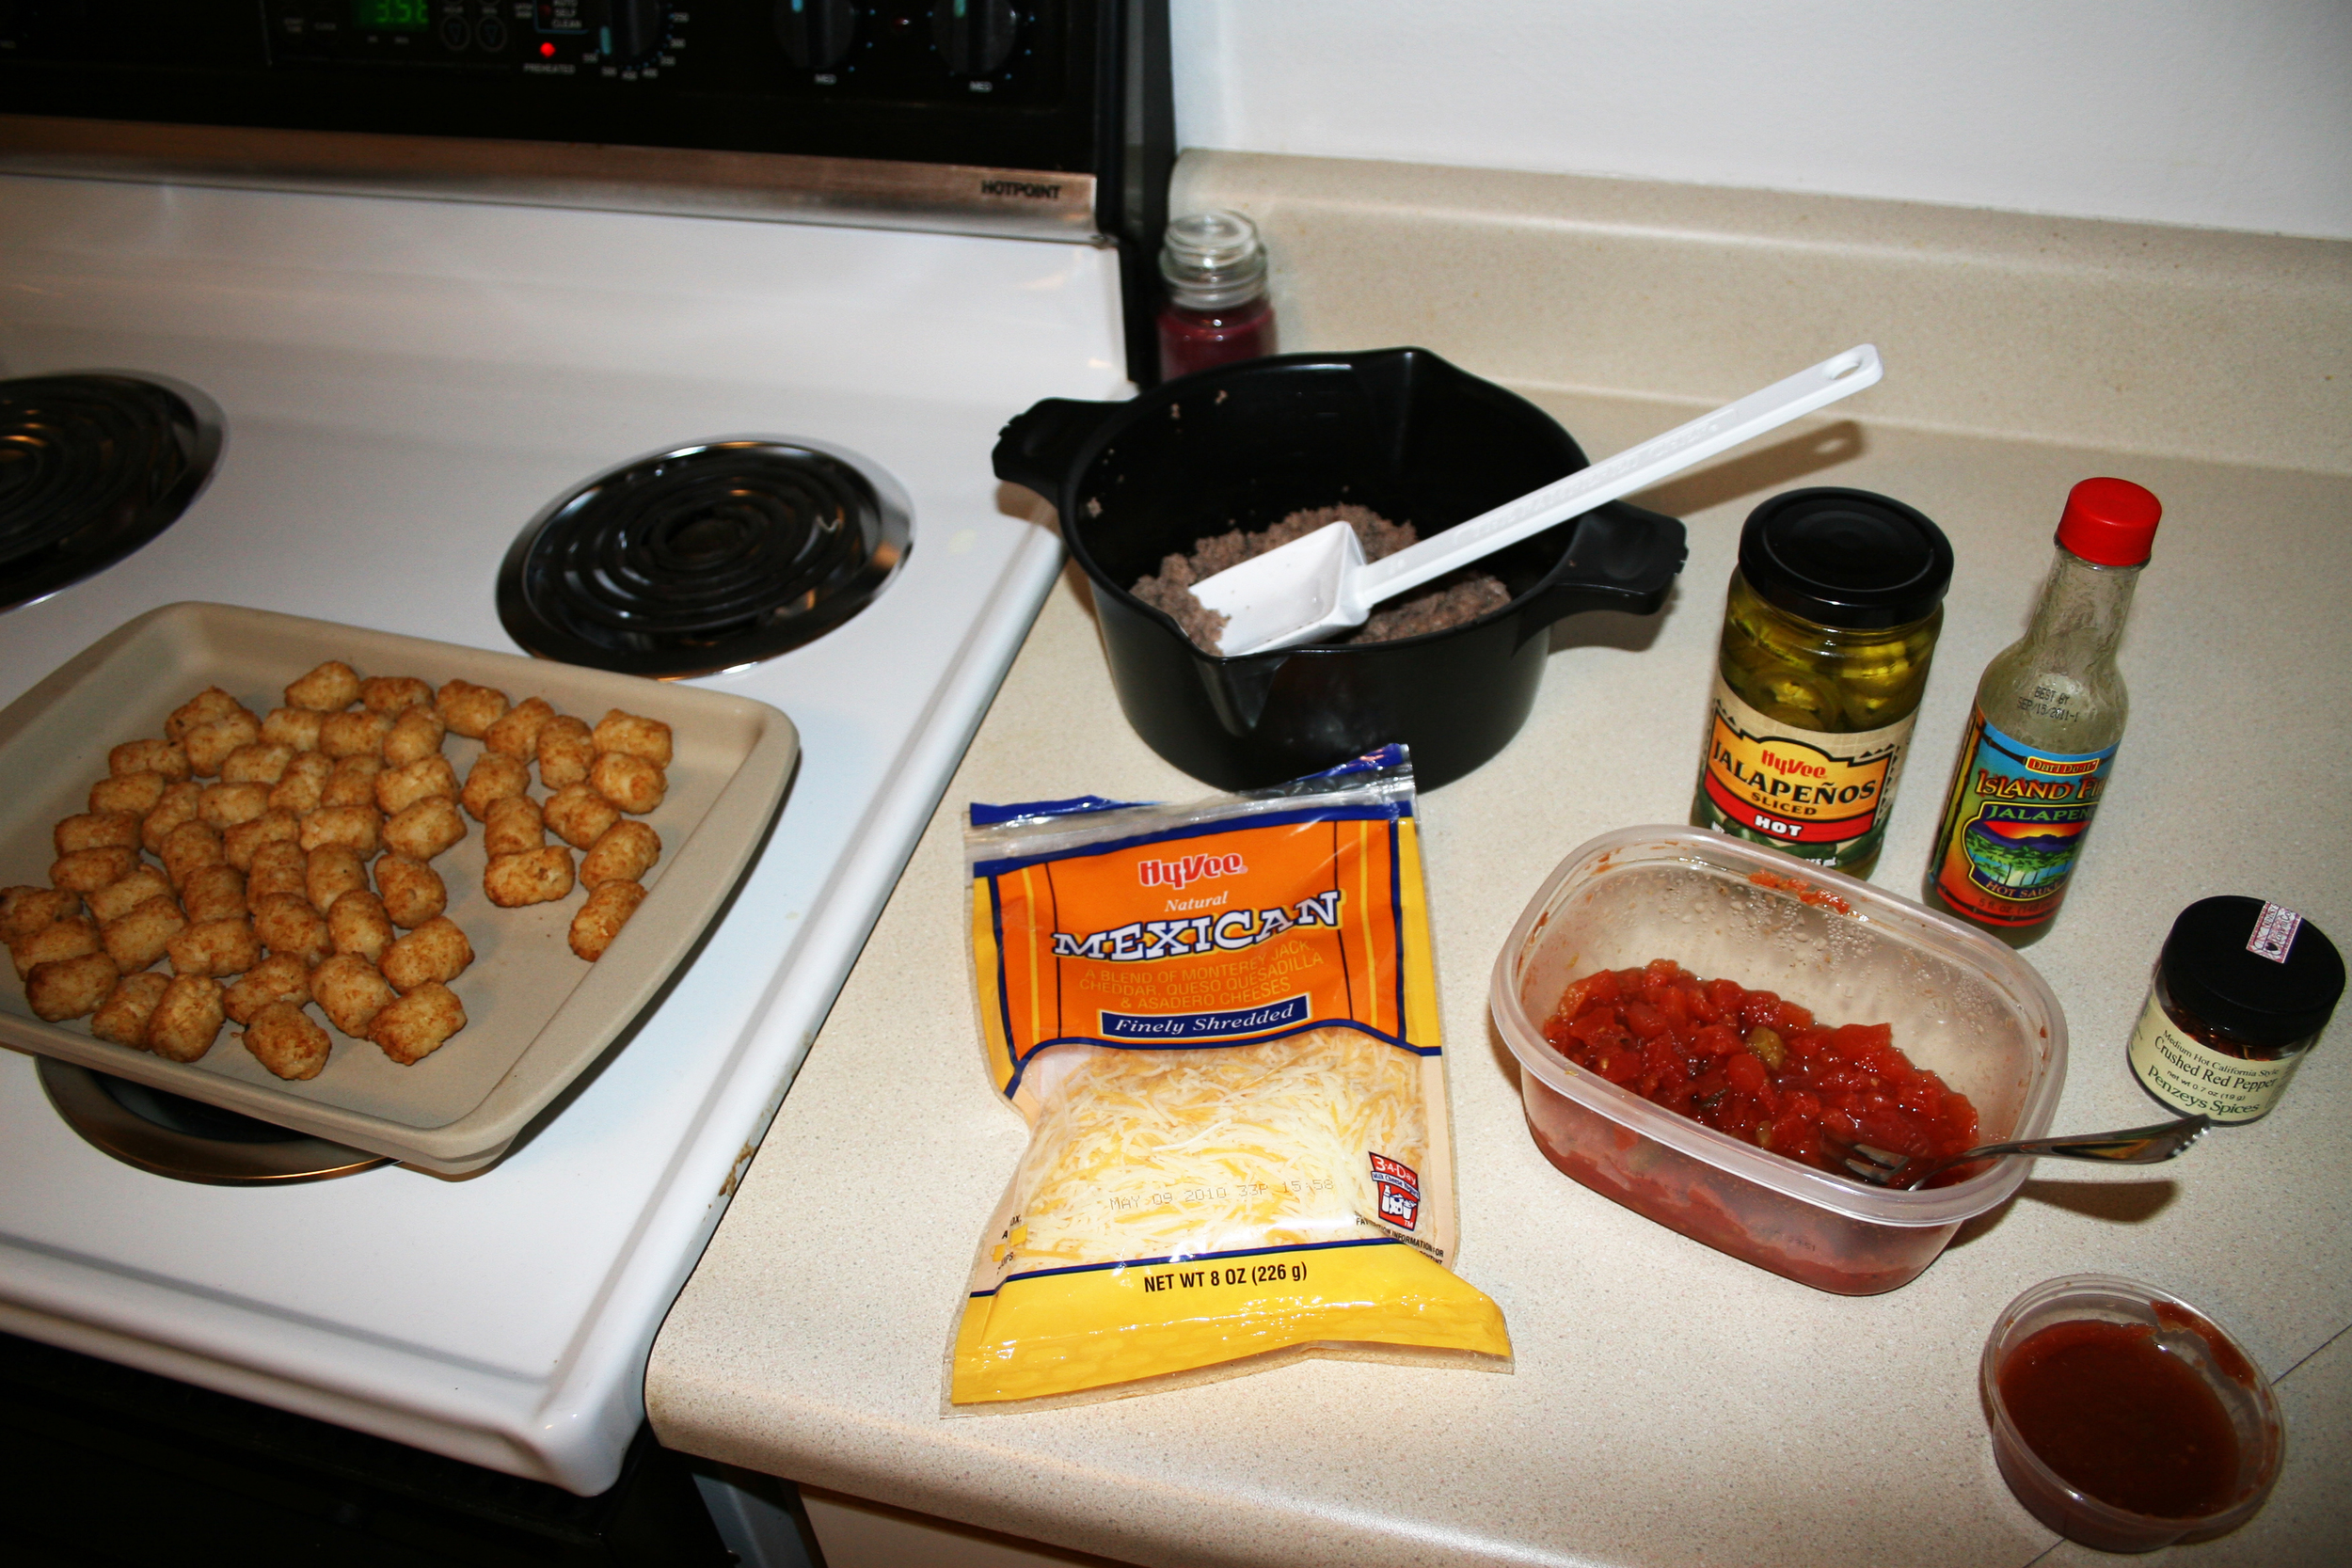 Preparing to make totchos